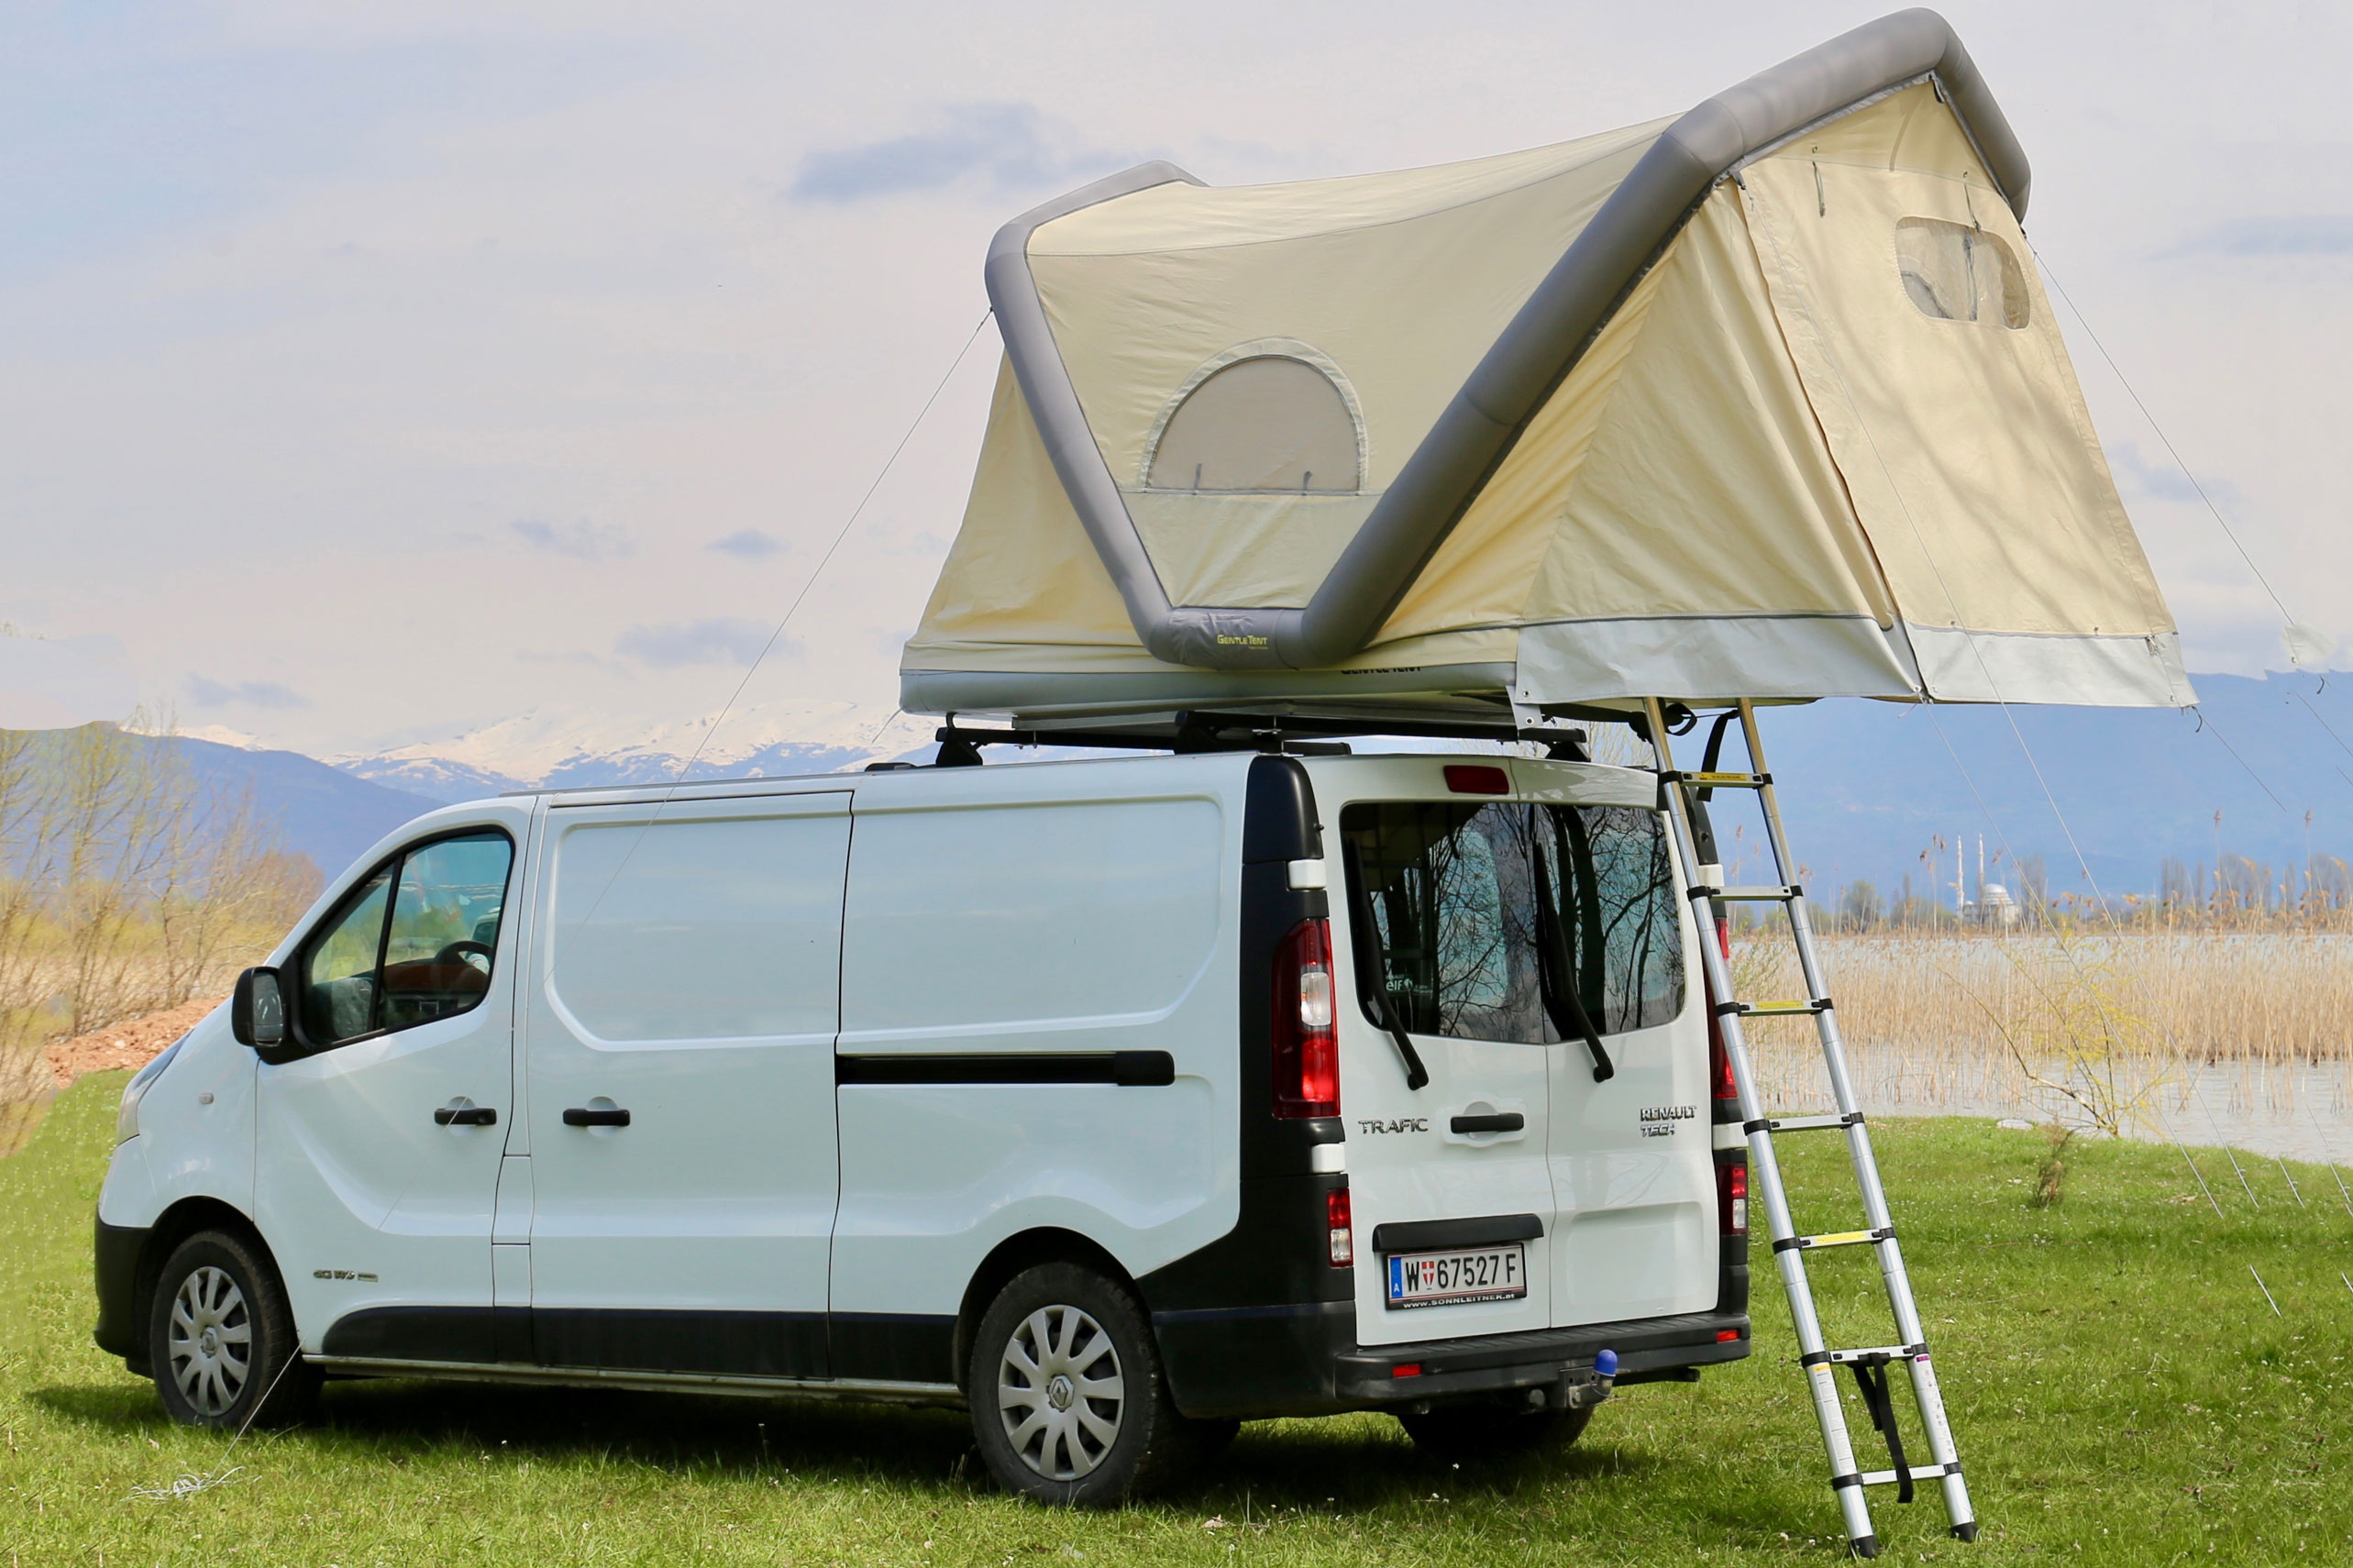 GentleTent inflatable rooftop tent on van